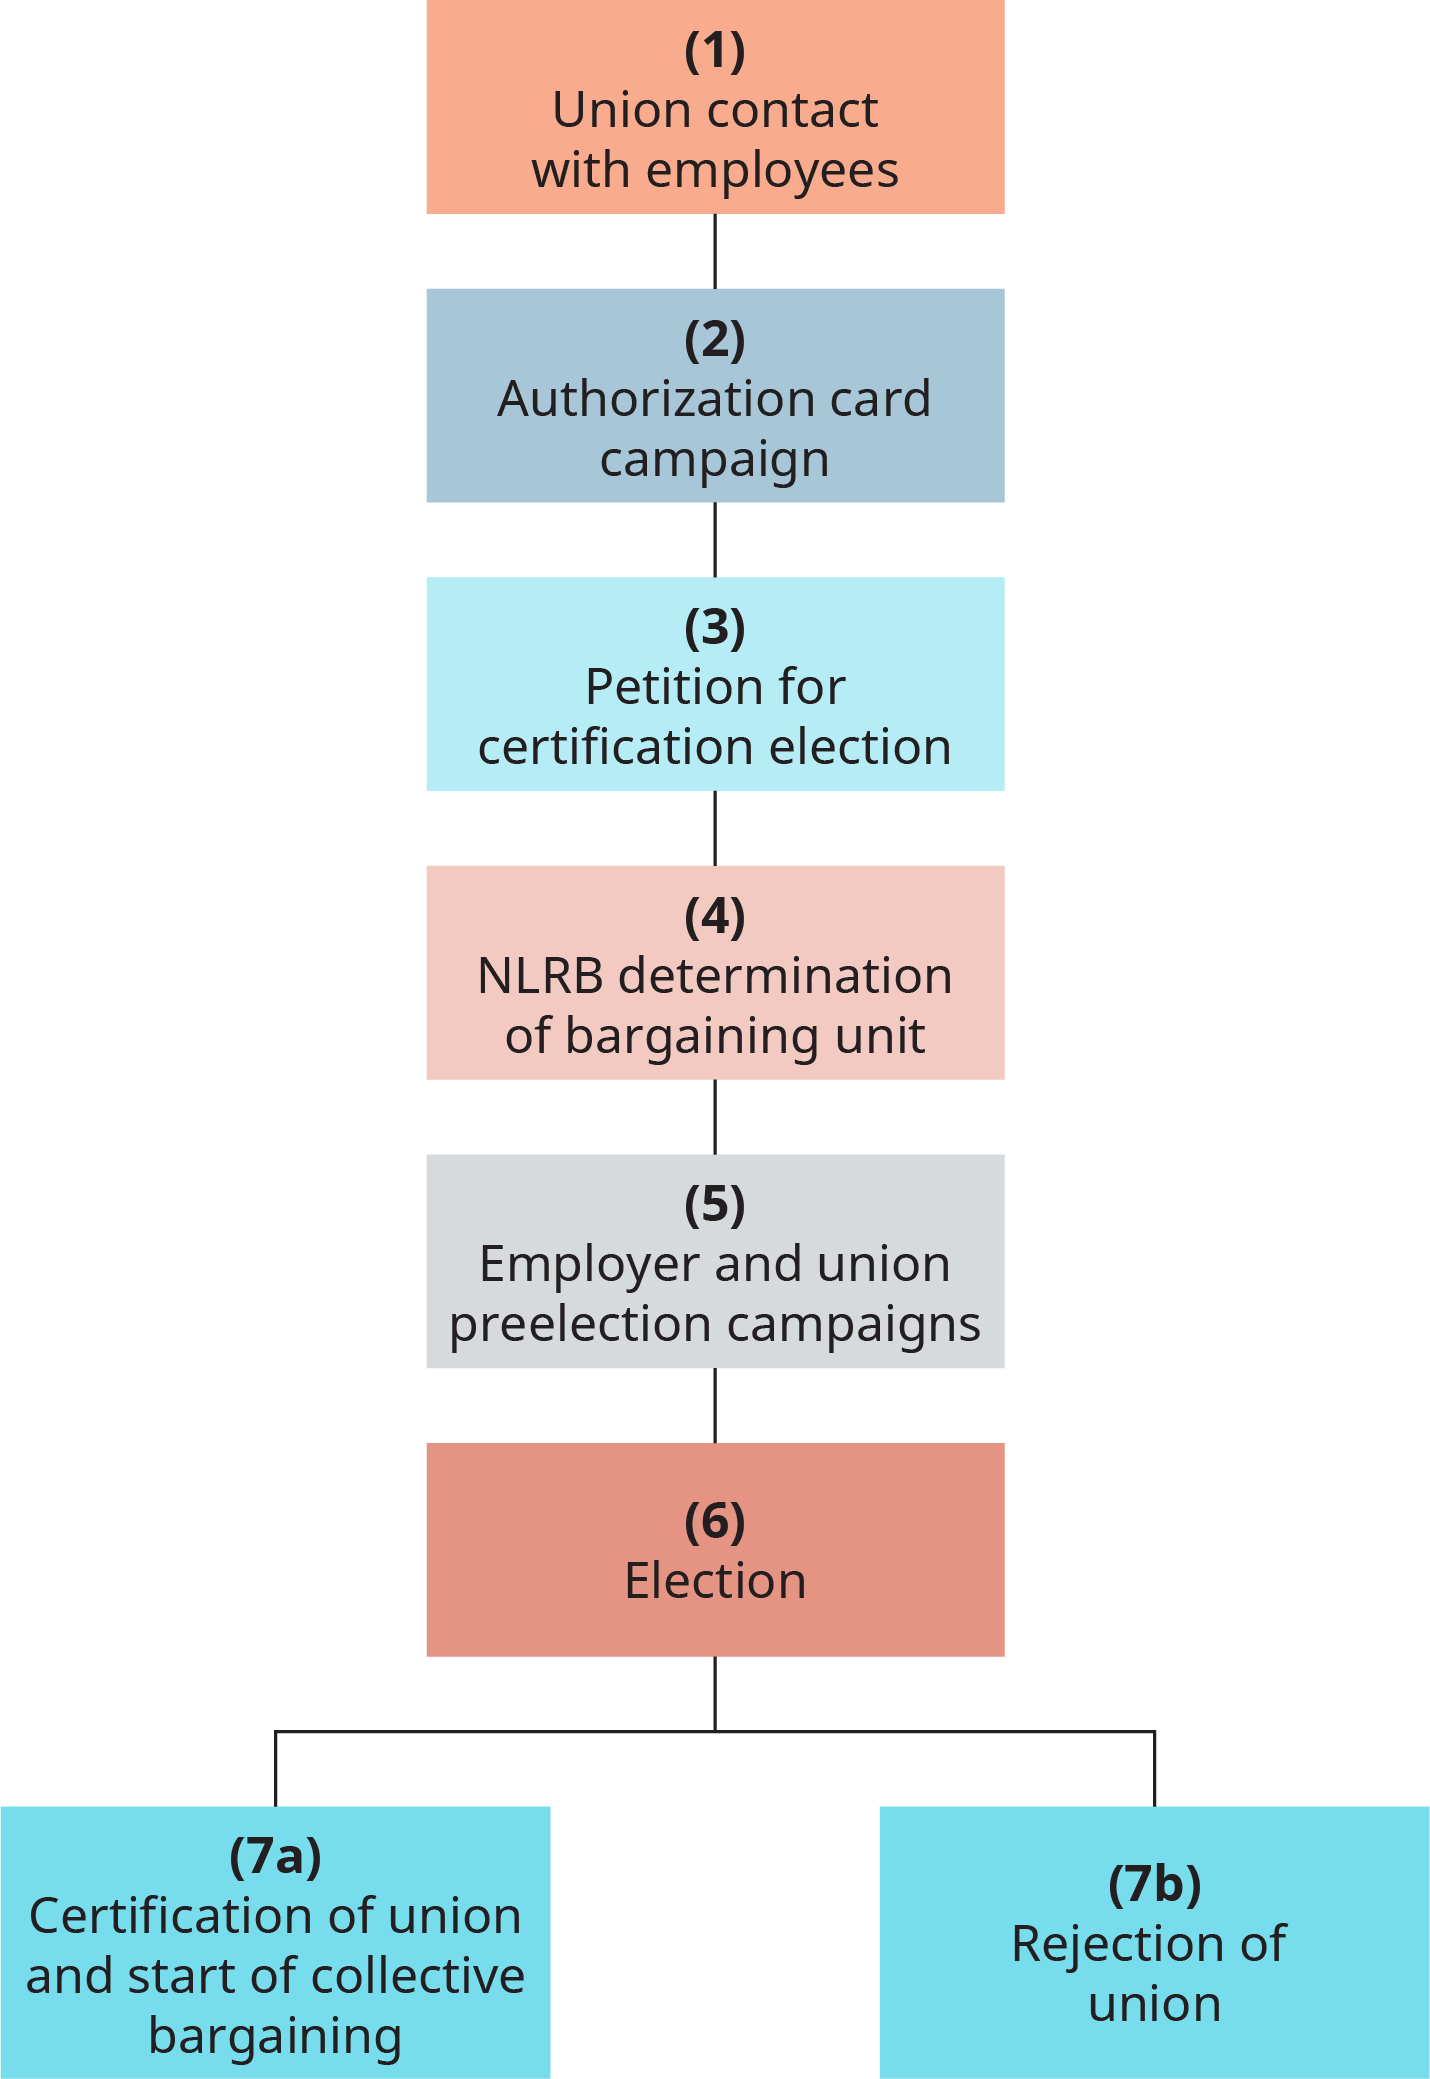 The steps are numbered 1 through 7. 1, union contact with employees. 2, authorization card campaign. 3, petition for certification election. 4, N L R B determination of bargaining unit. 5, employer and union pre election campaigns. 6, election. 7 a, certification of union and start of collective bargaining. 7 b, rejection of union.